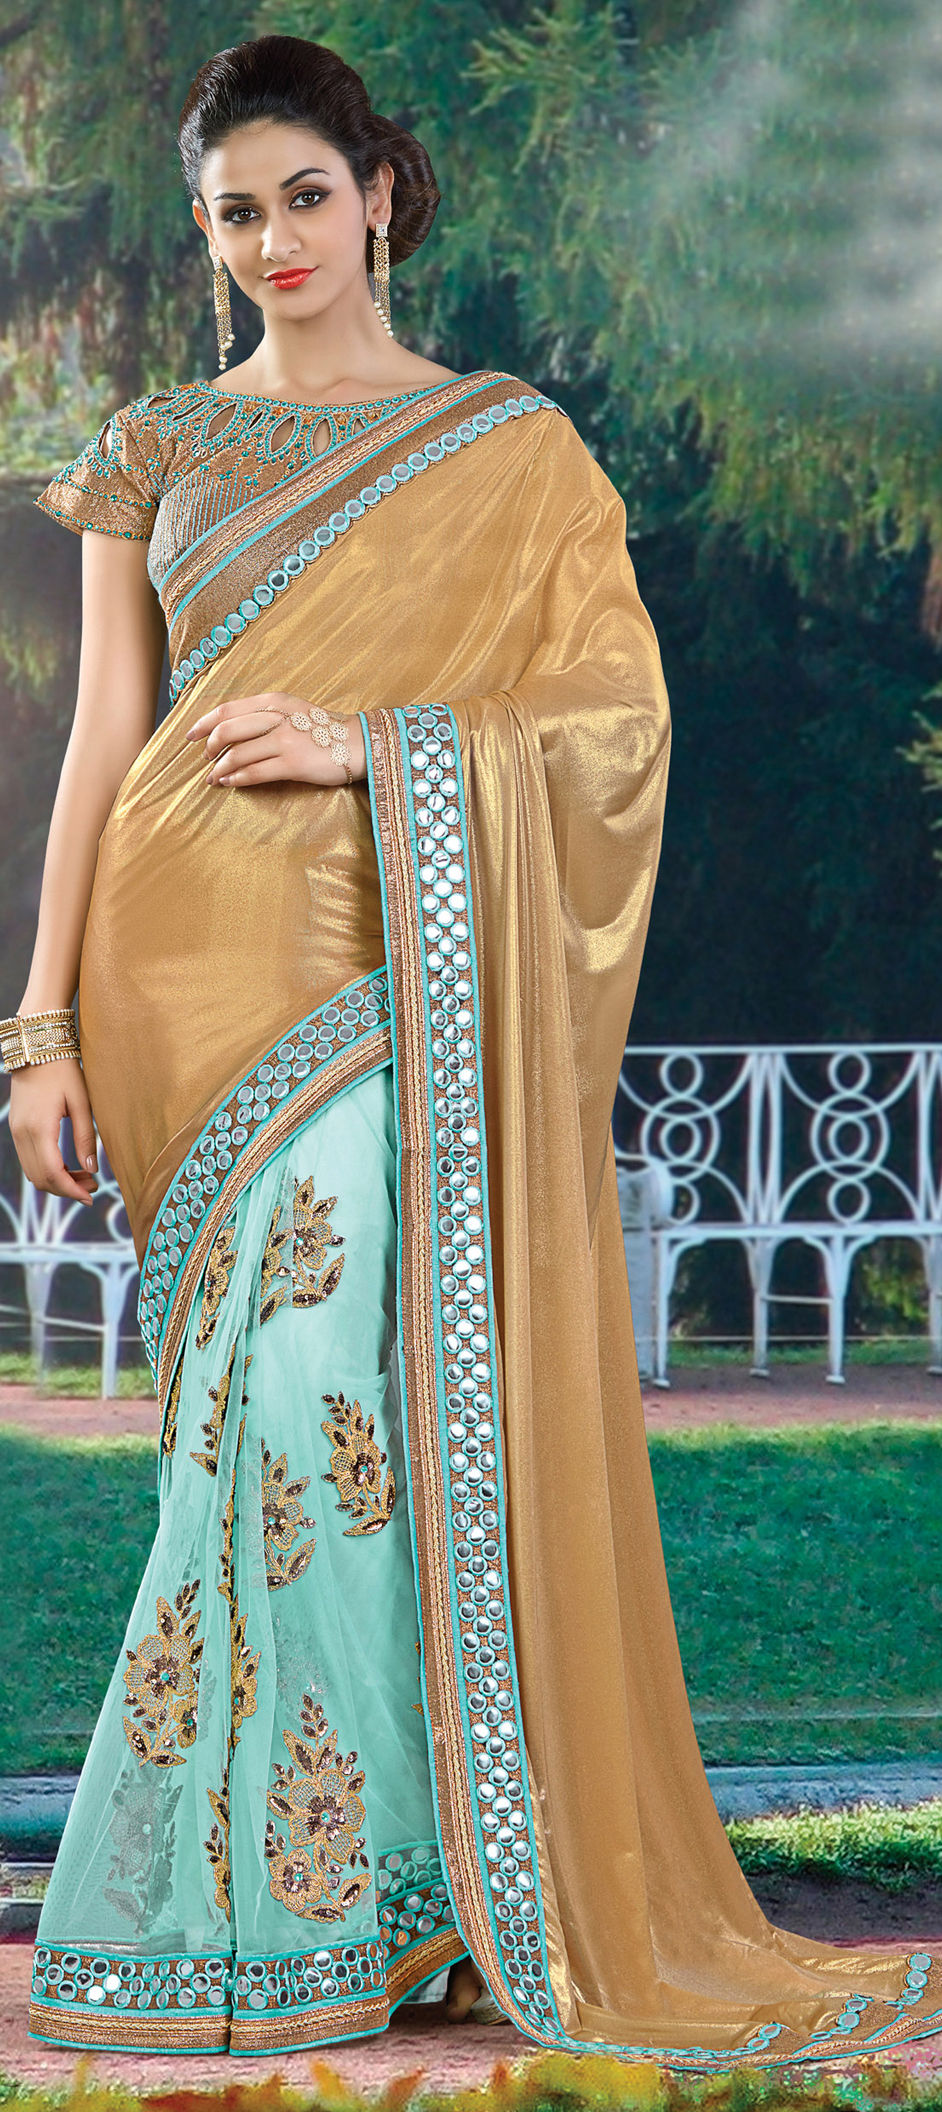 07c3e25efe 727440: Blue, Gold color family Embroidered Sarees, Party Wear ...